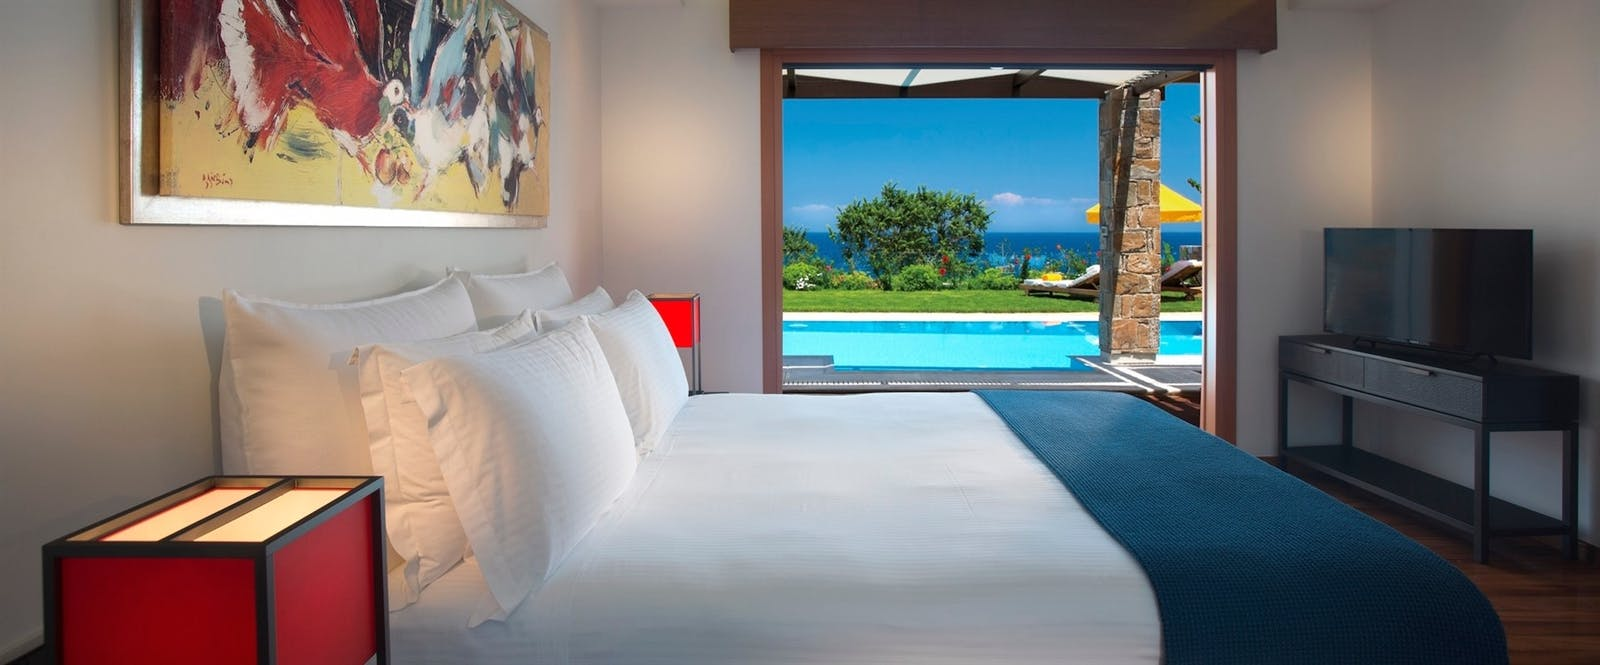 Villa Bedroom at Porto Zante, Zakynthos